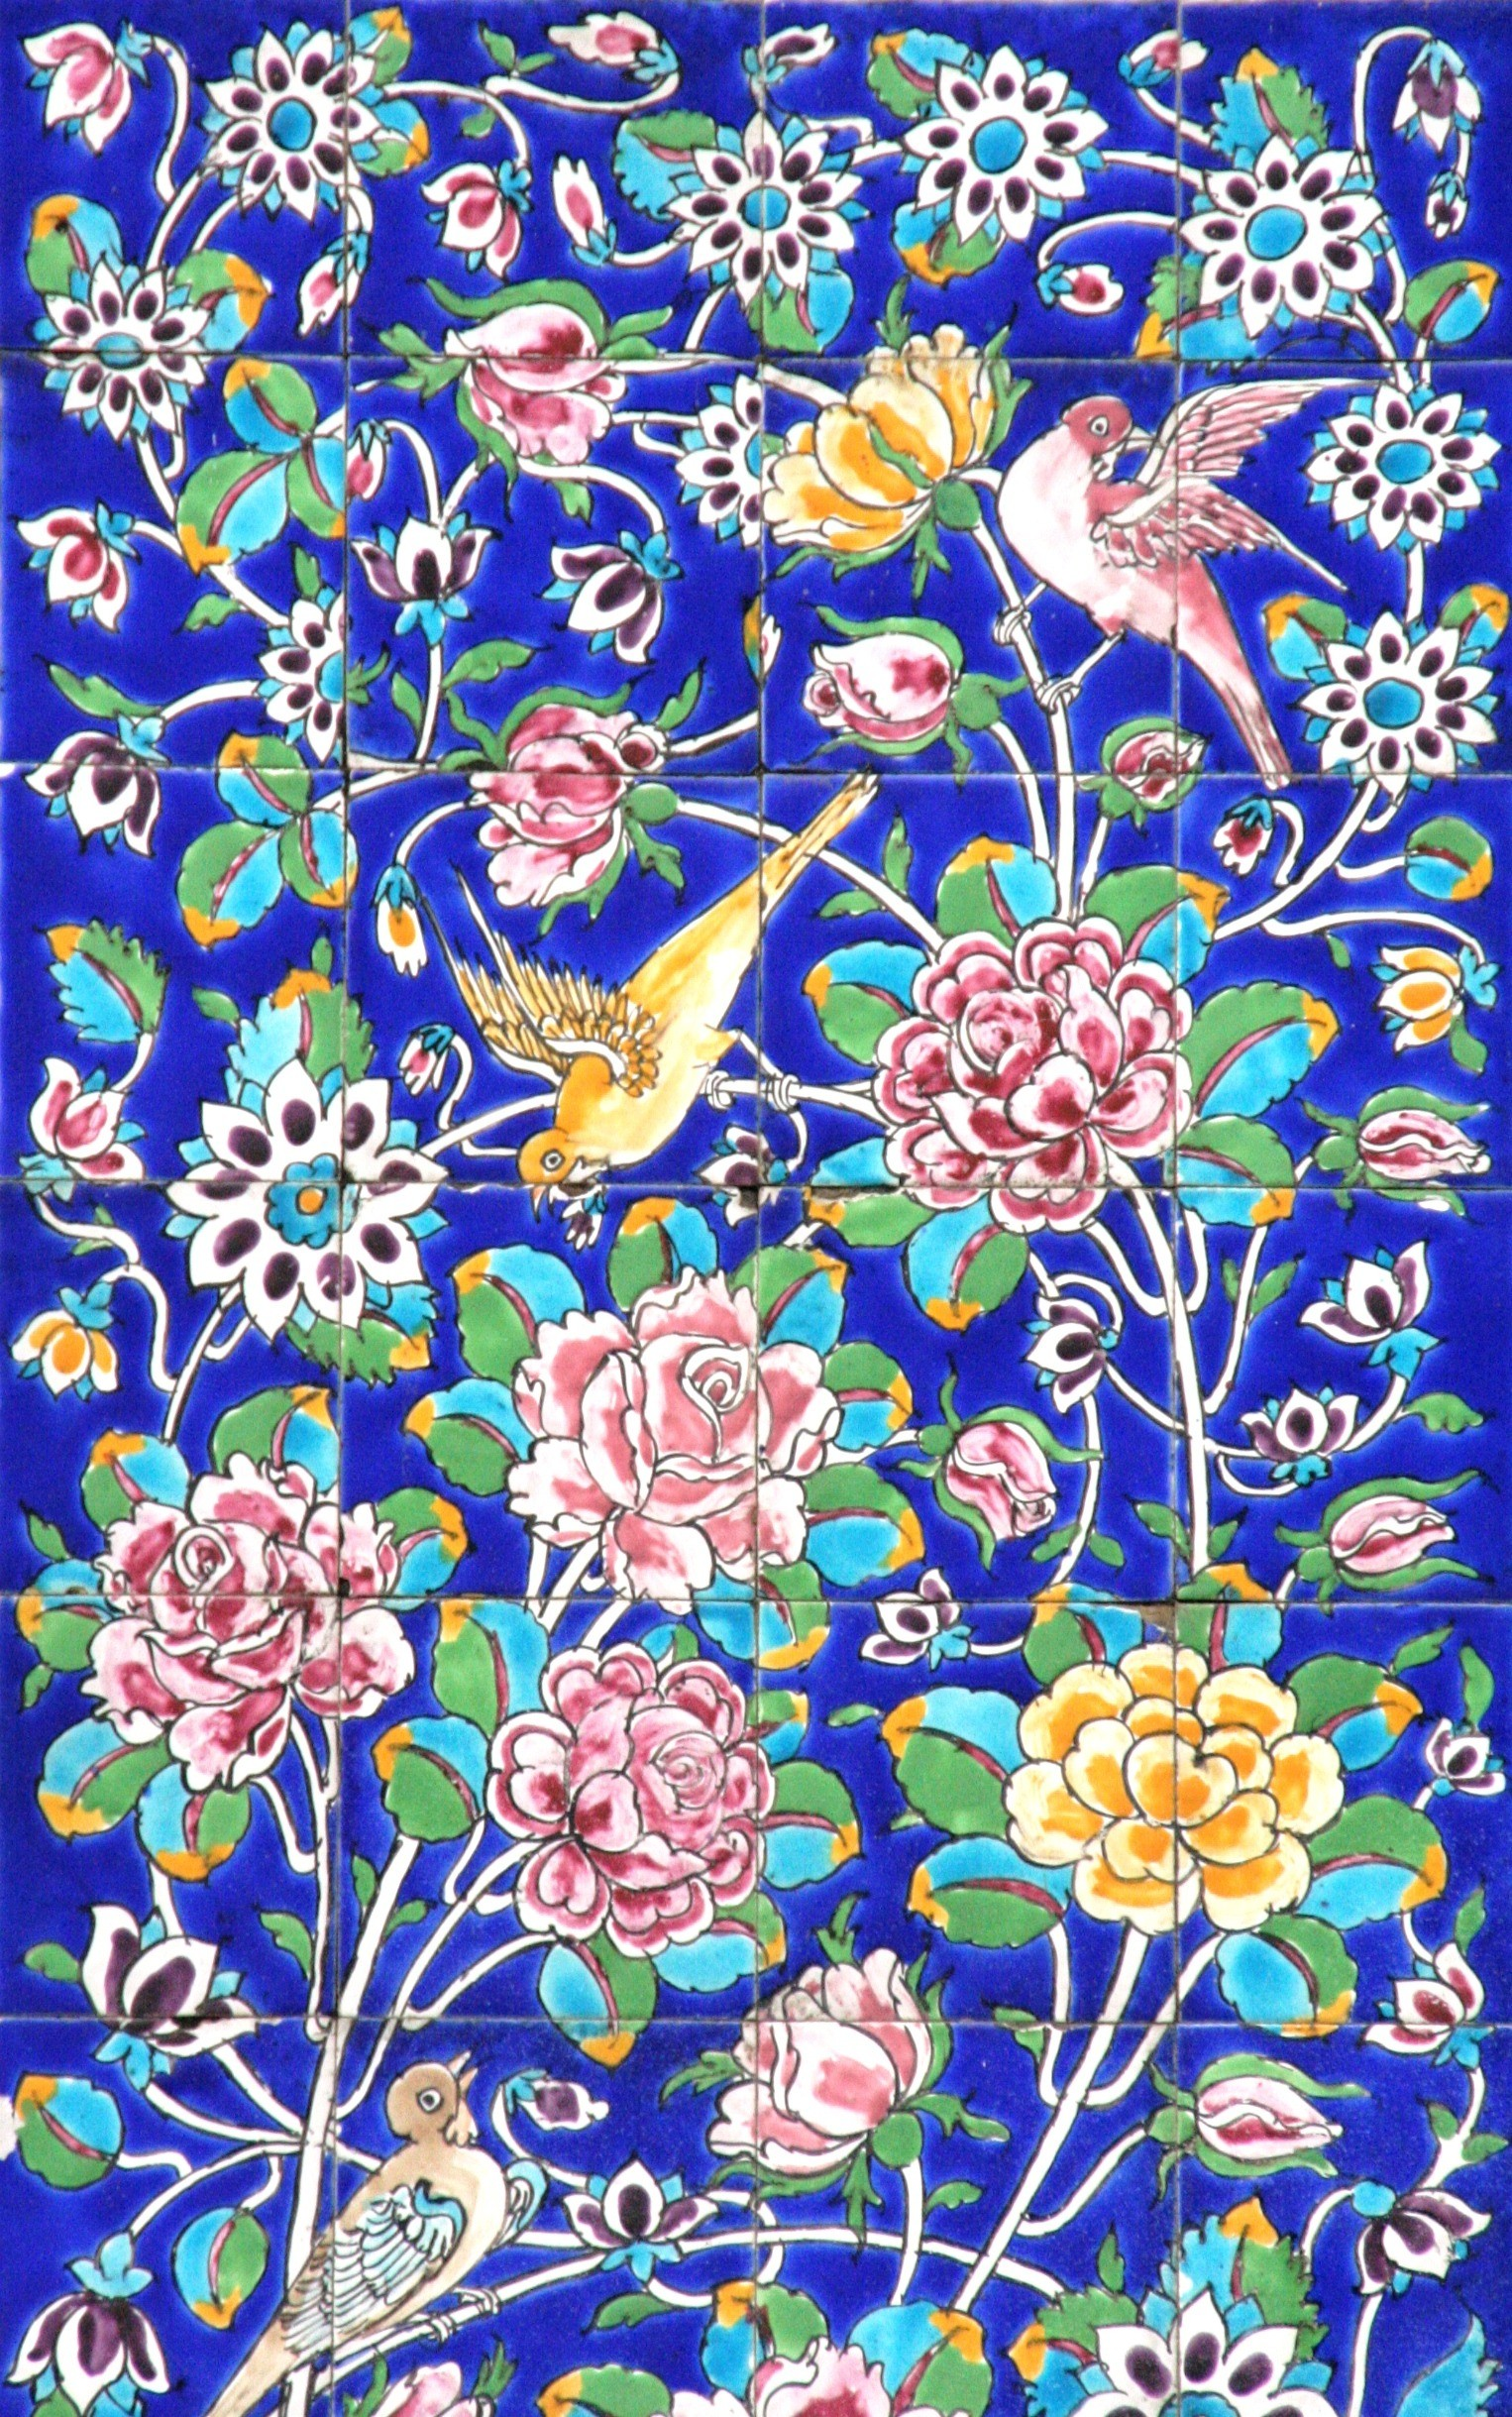 1526x2439 flower pattern line ceramic tile craft textile art design decorative wallpaper  tapestry flooring